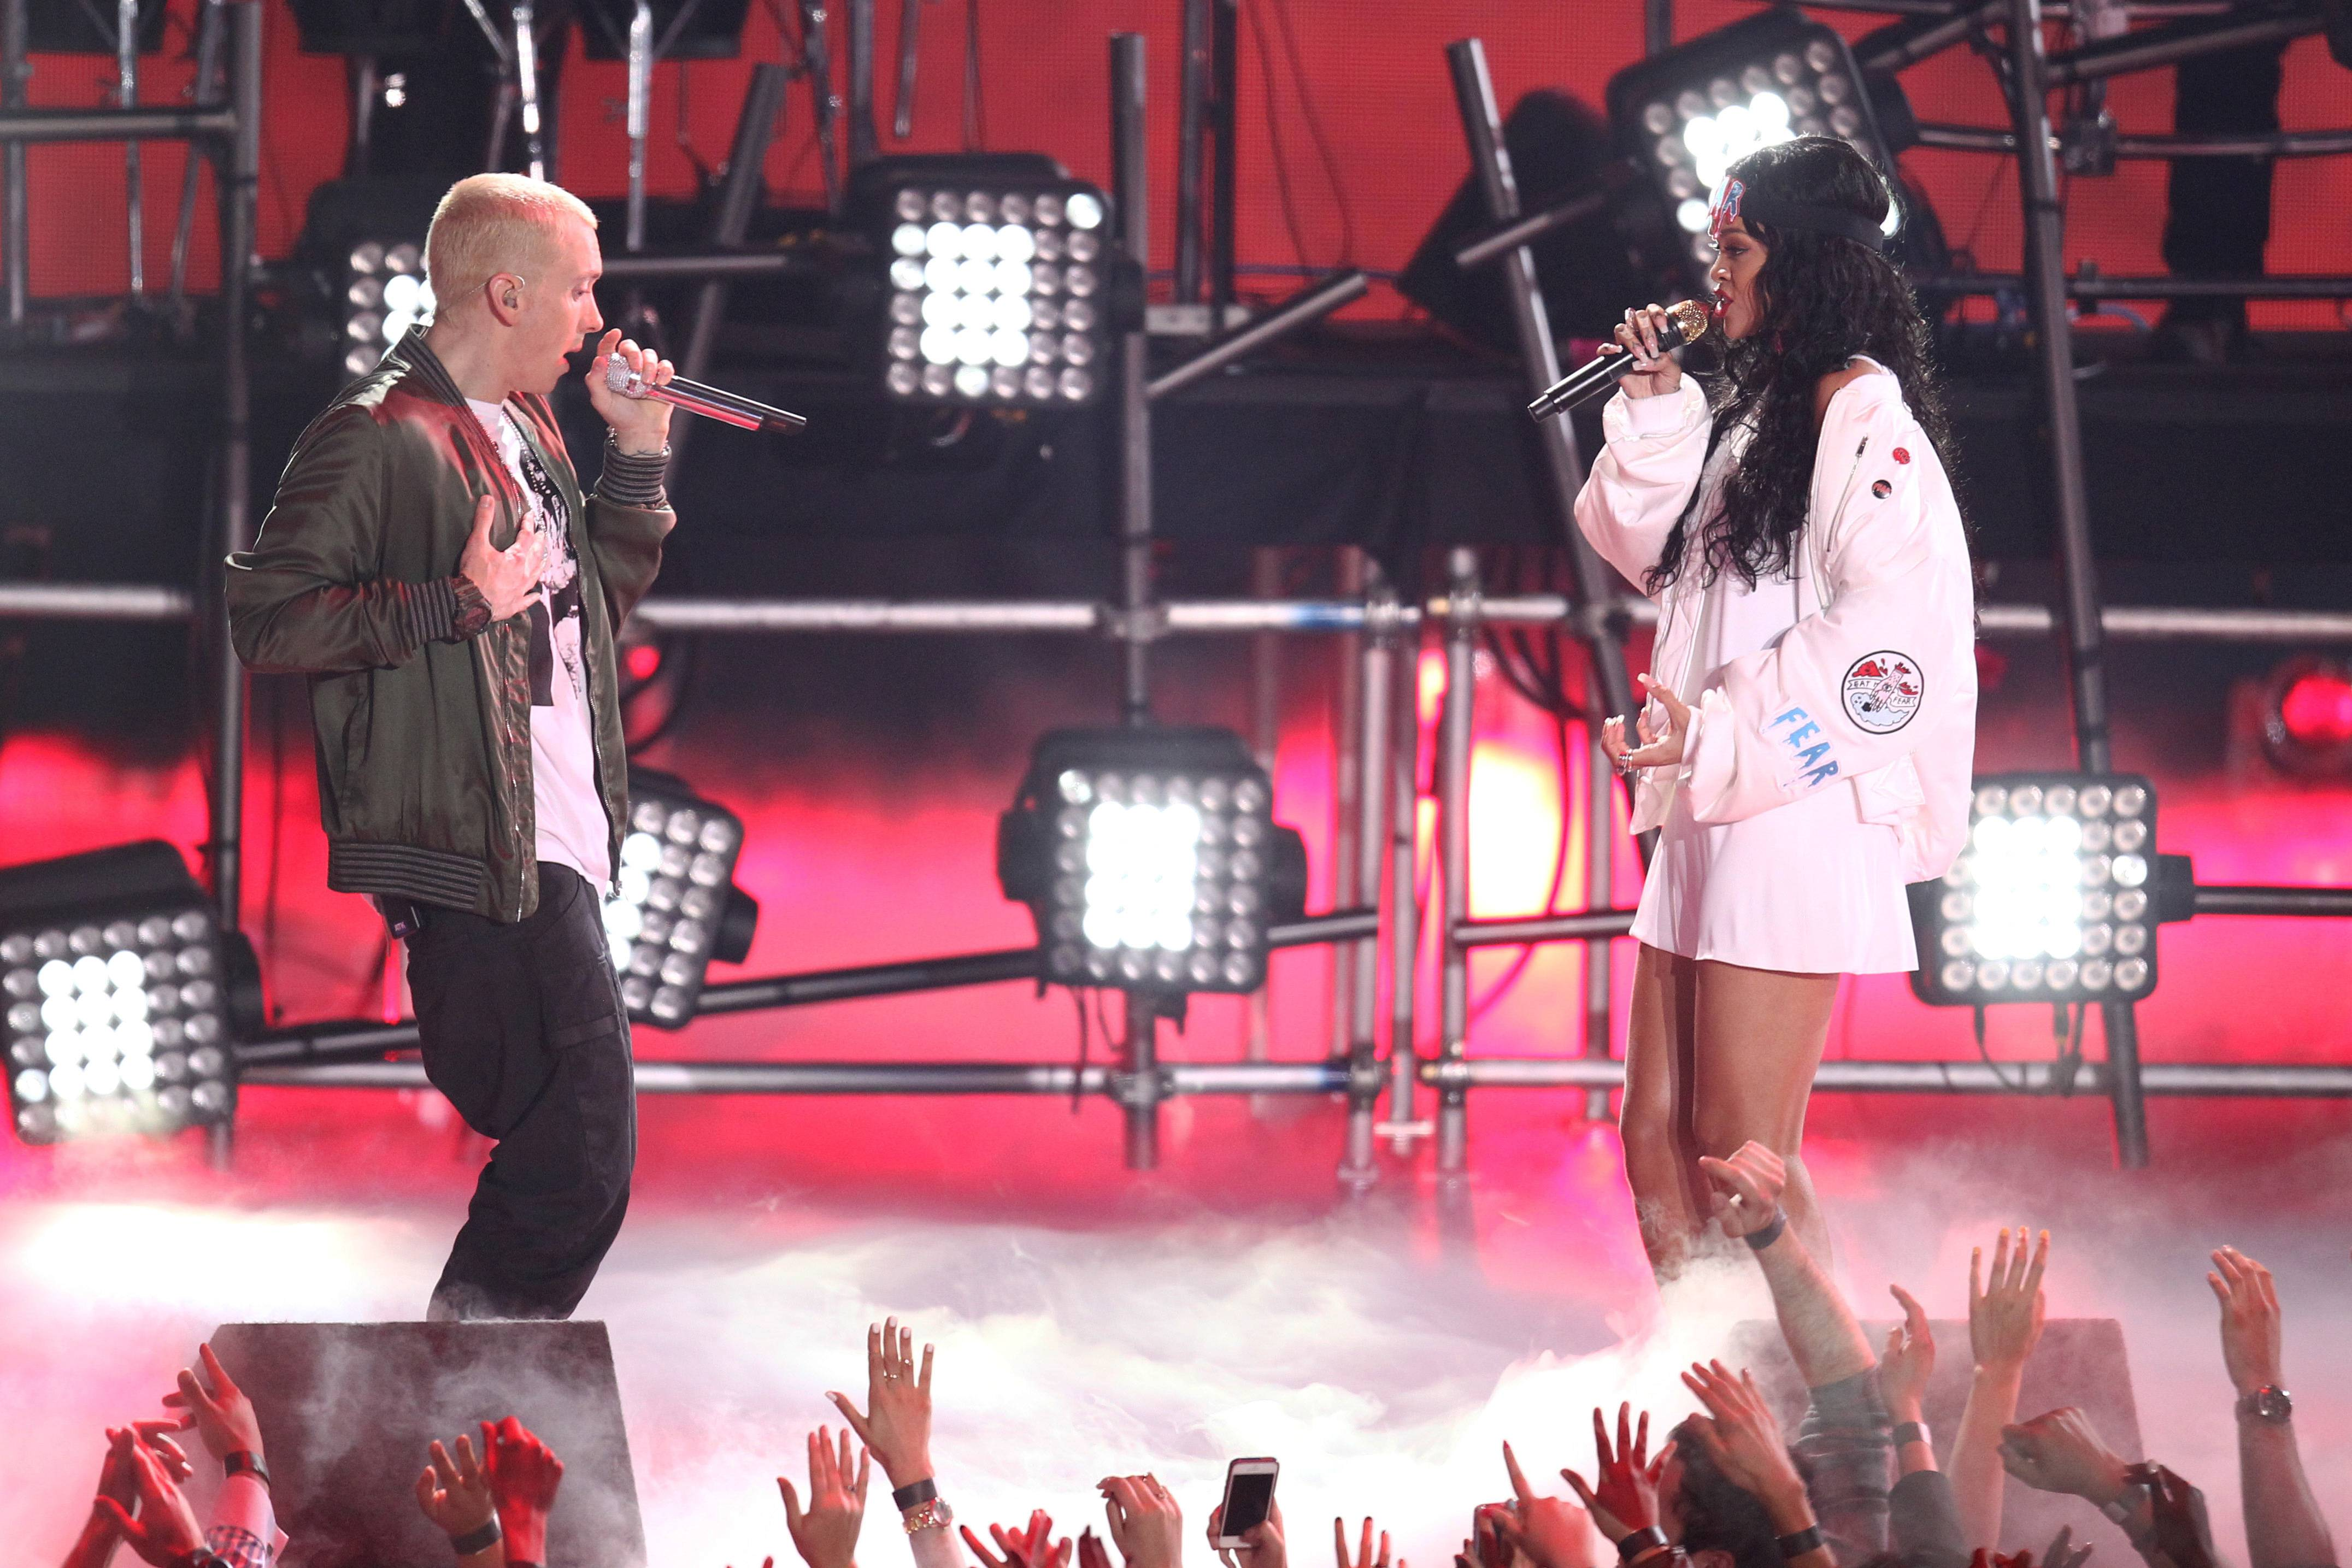 Eminem, left, and Rihanna perform on stage at the MTV Movie Awards on Sunday at Nokia Theatre in Los Angeles.